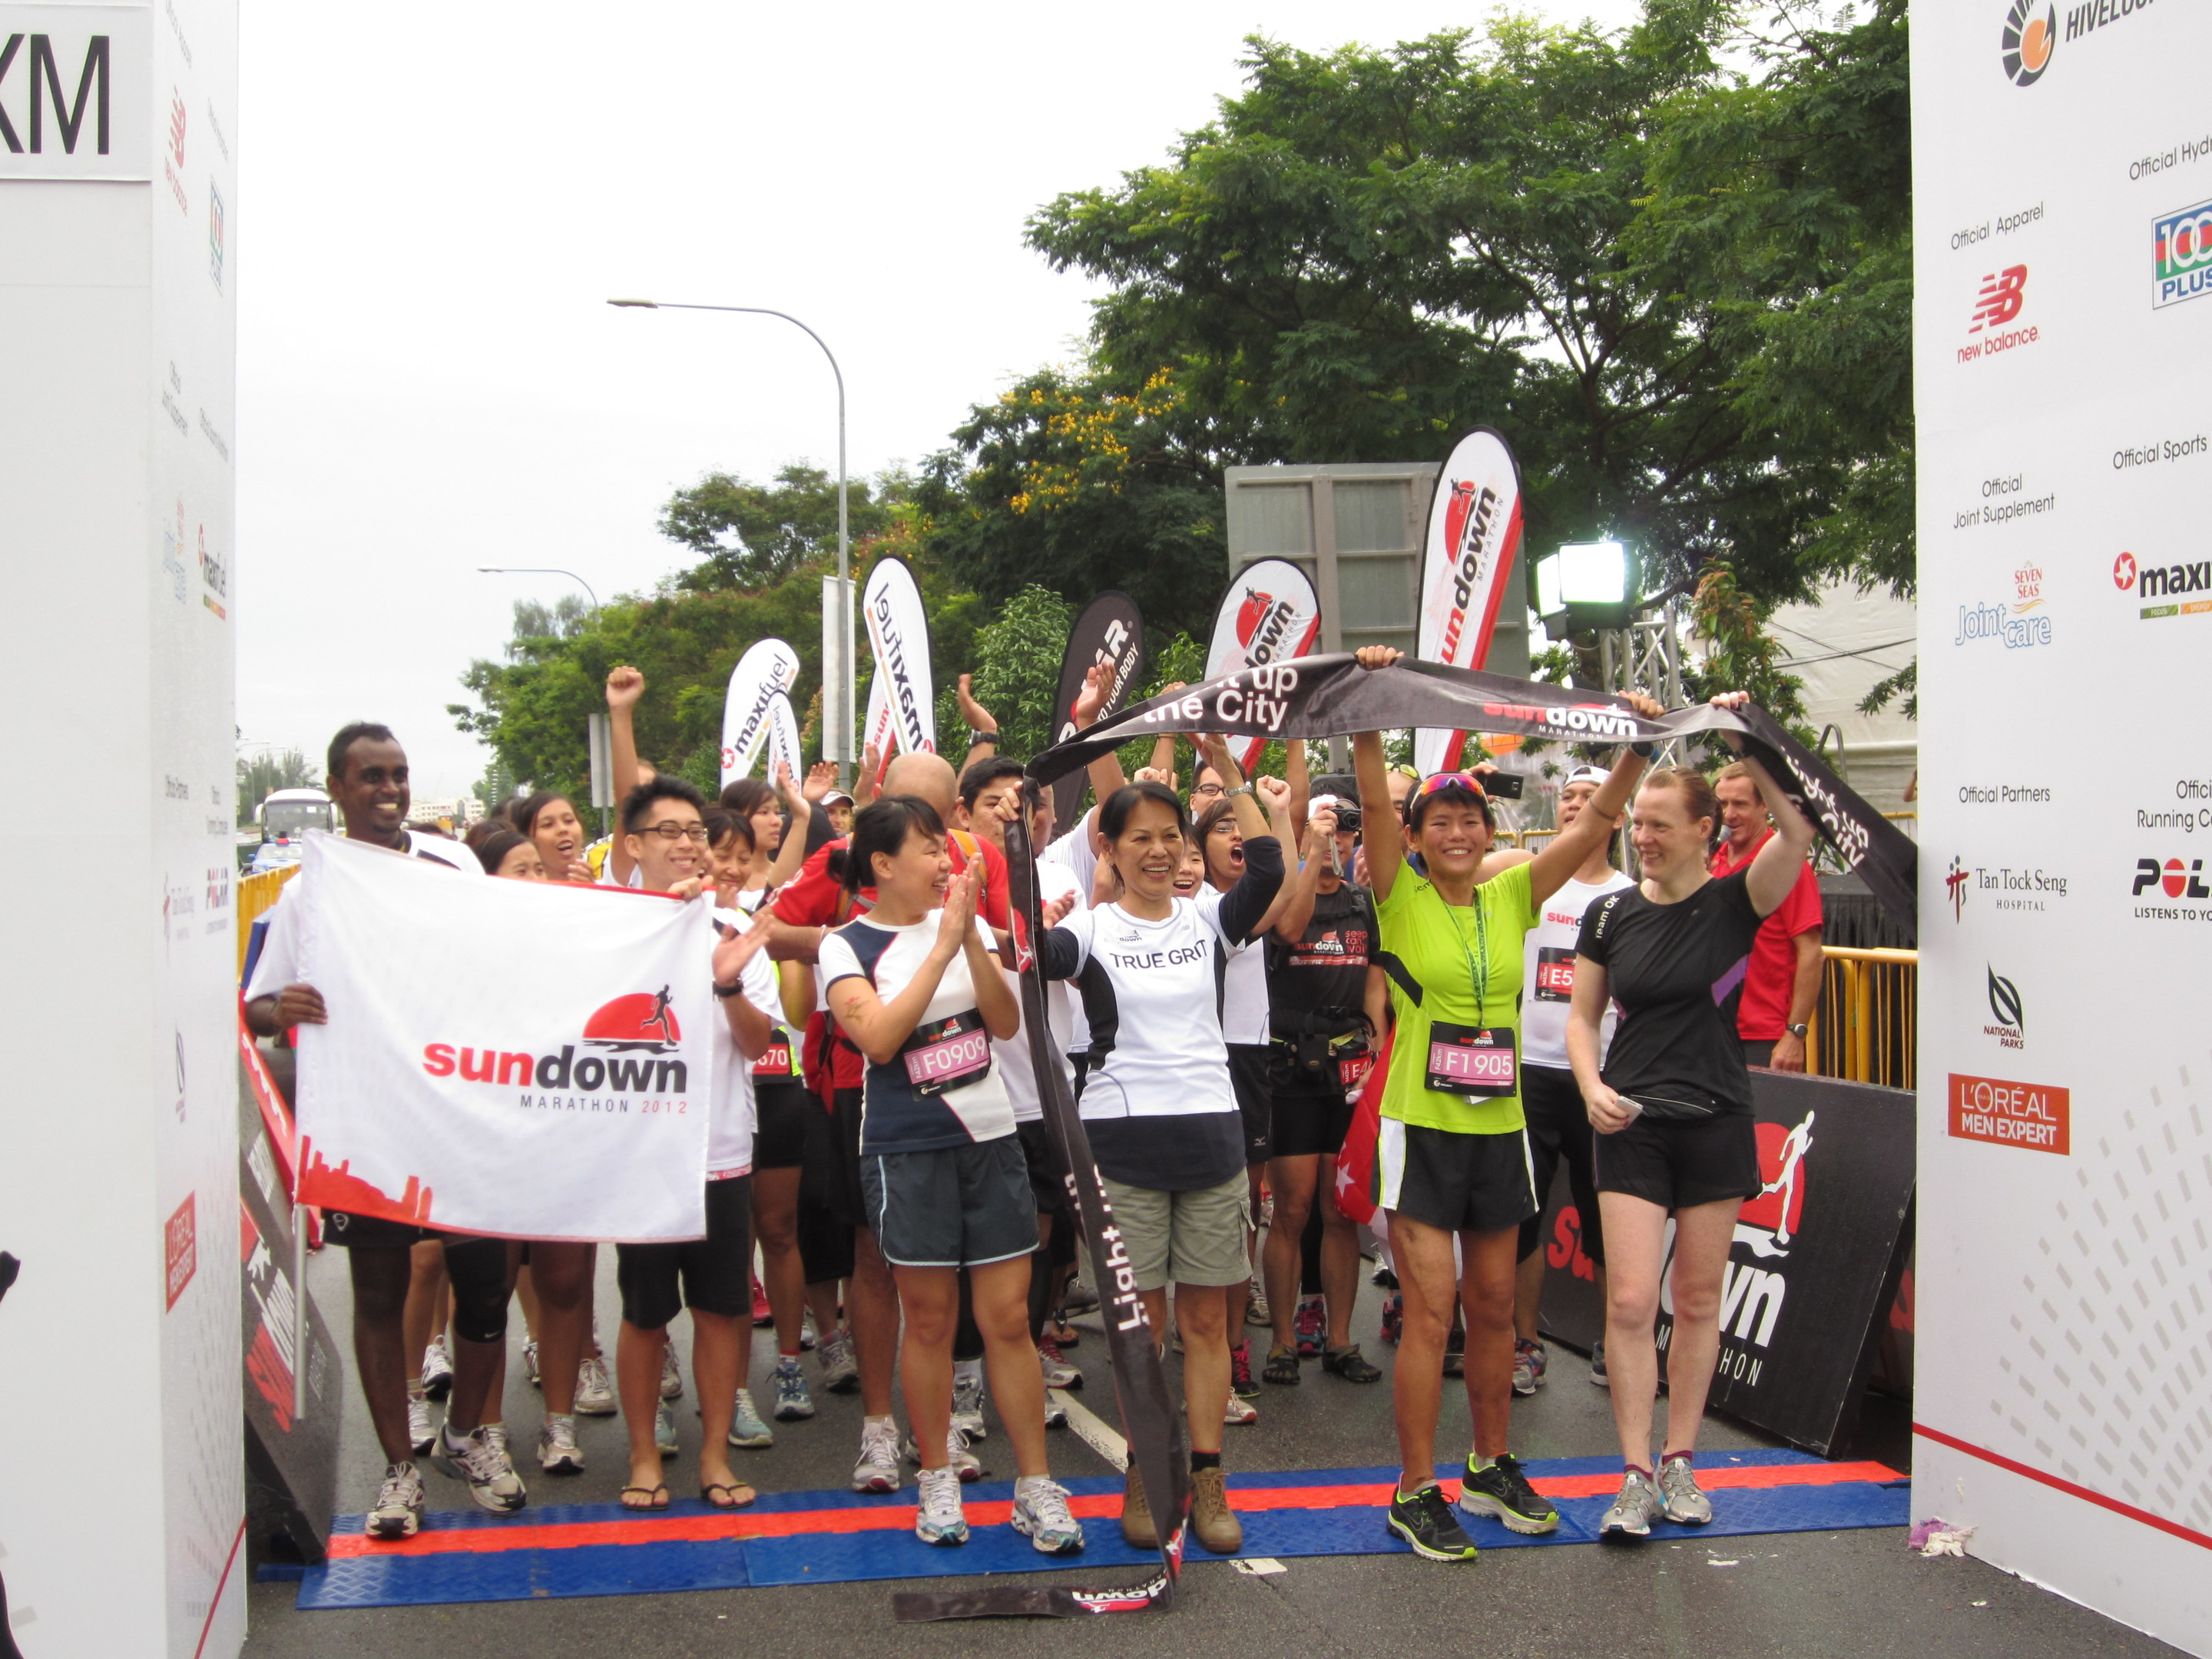 Kirsten (in green T-shirt, second right) and Orla (far right) celebrate the end of Kirsten's first 'race' after her accident: the Singapore Sundown Marathon in 2012, which took her 10 ½ hours to walk.